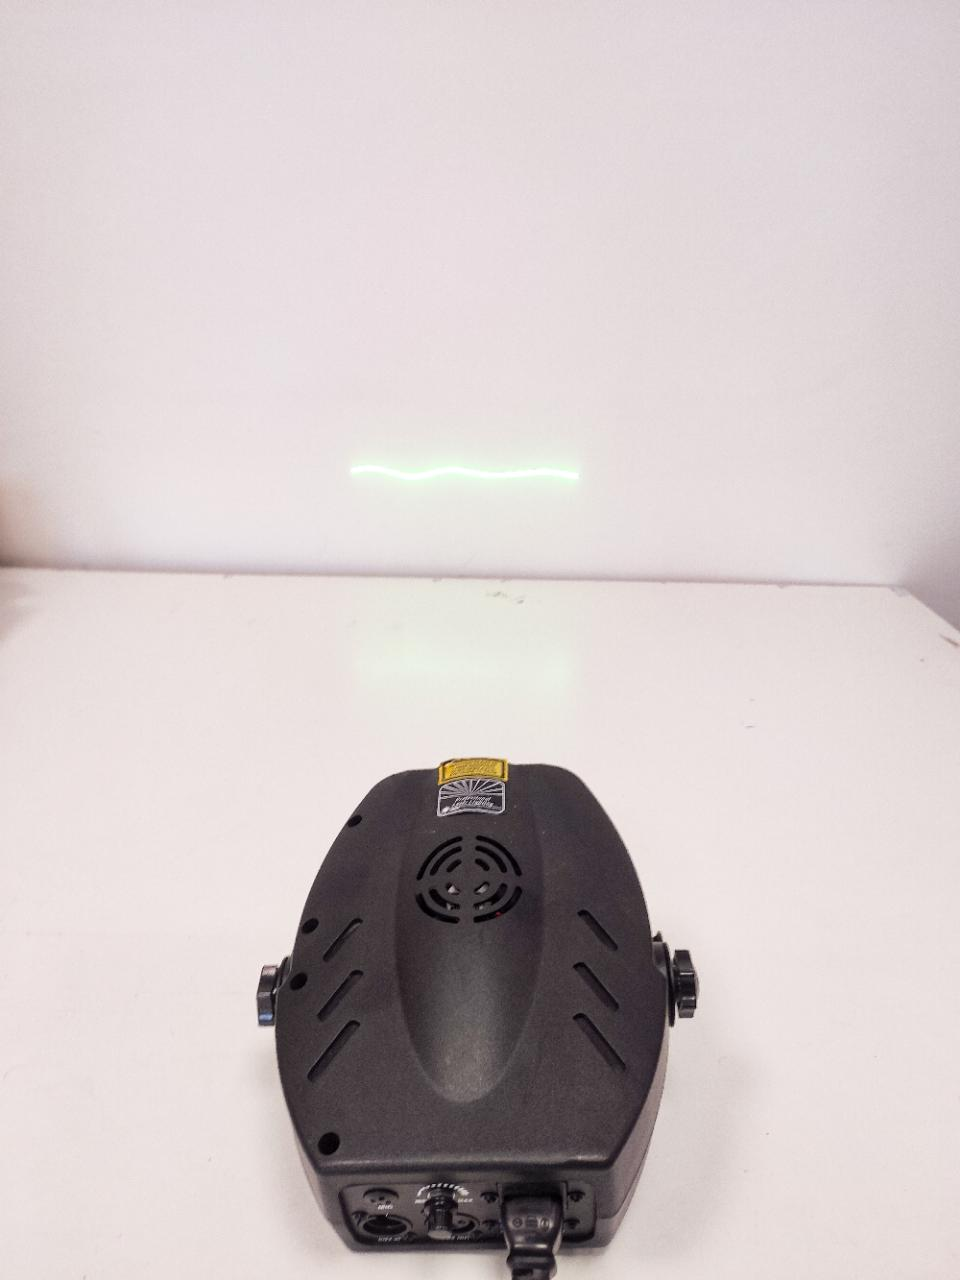 Laser, green 80mW (used)